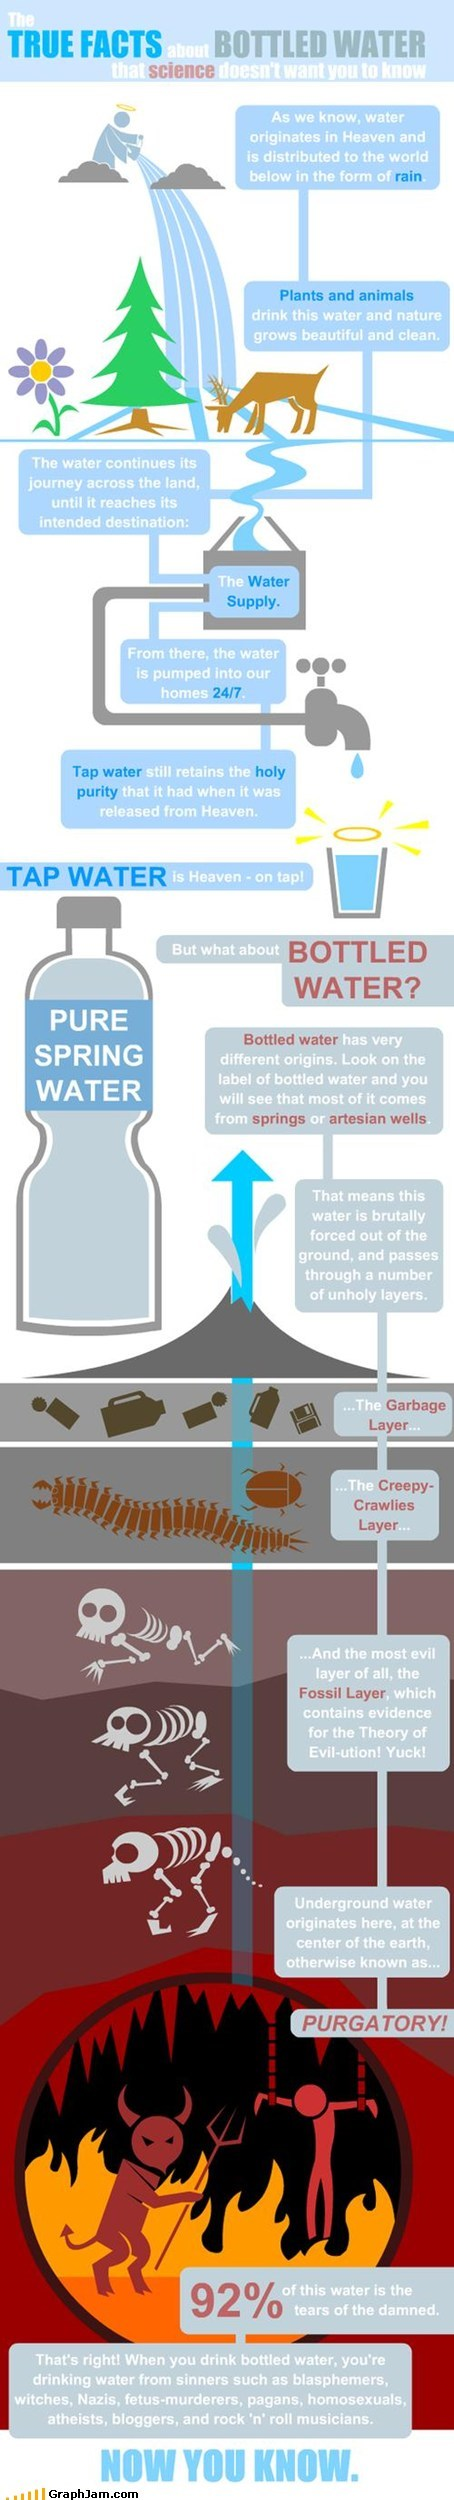 best of week bottled water infographic juice satan satire